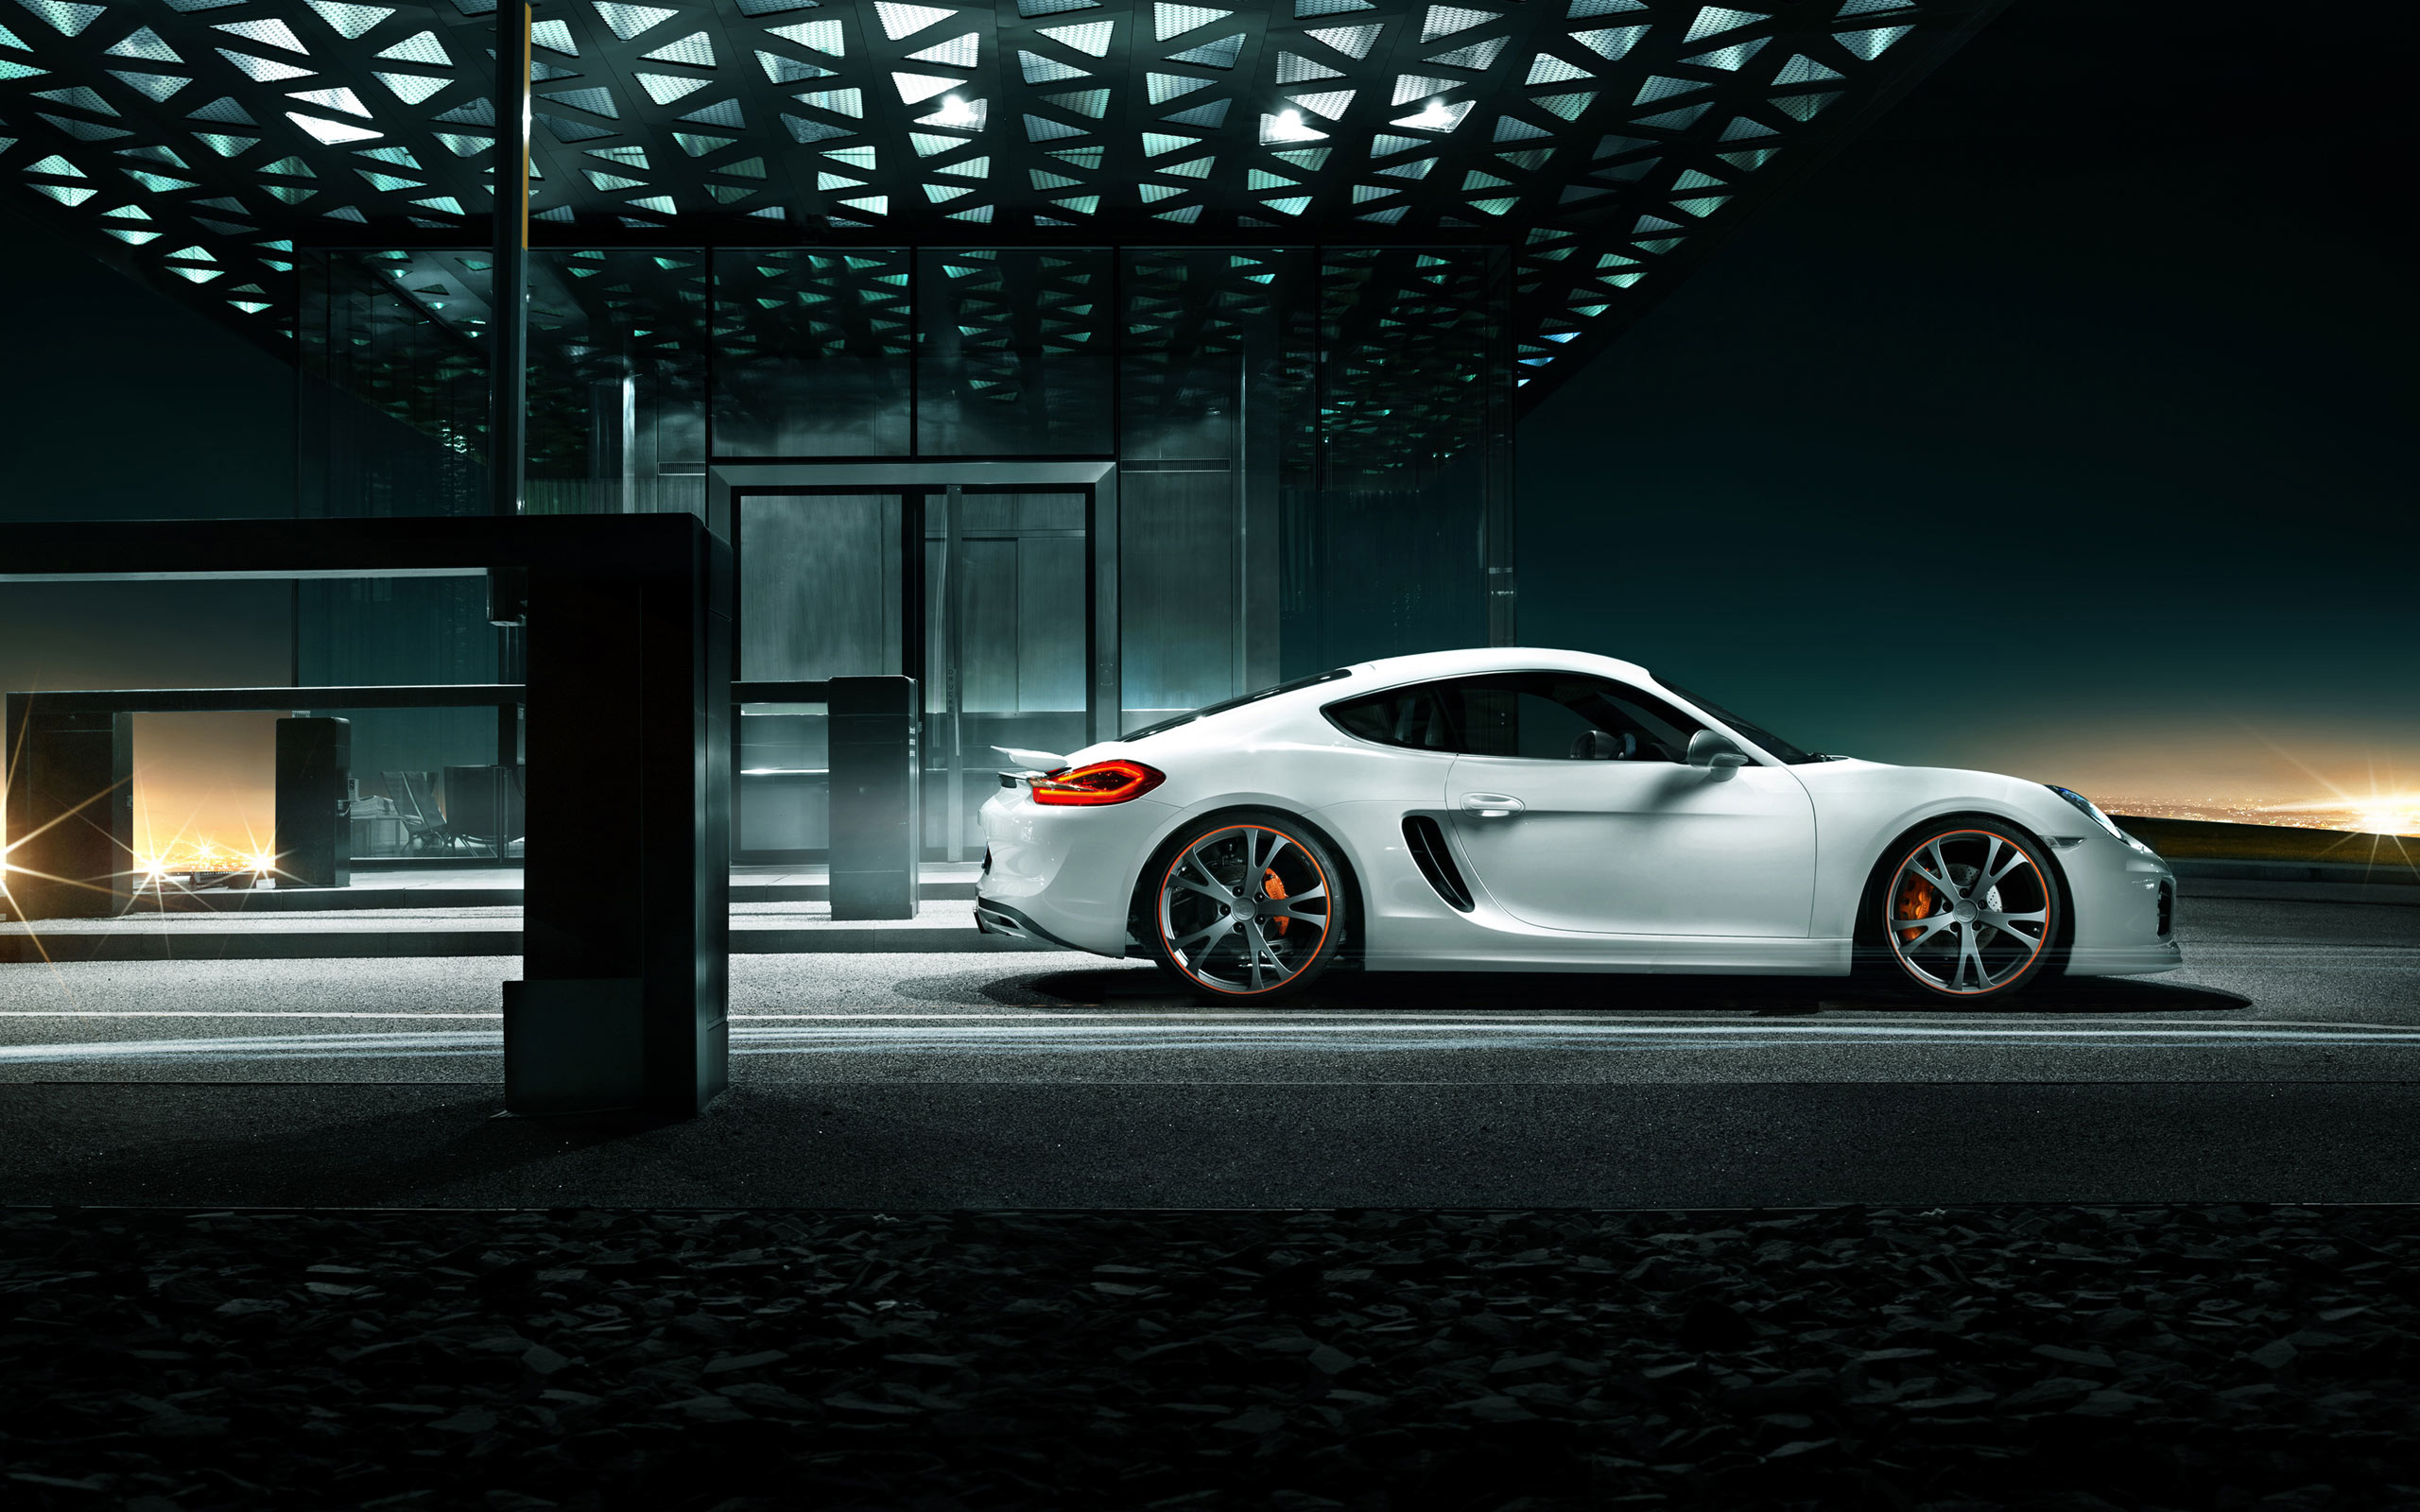 2560x1600 - Porsche Cayman Wallpapers 19